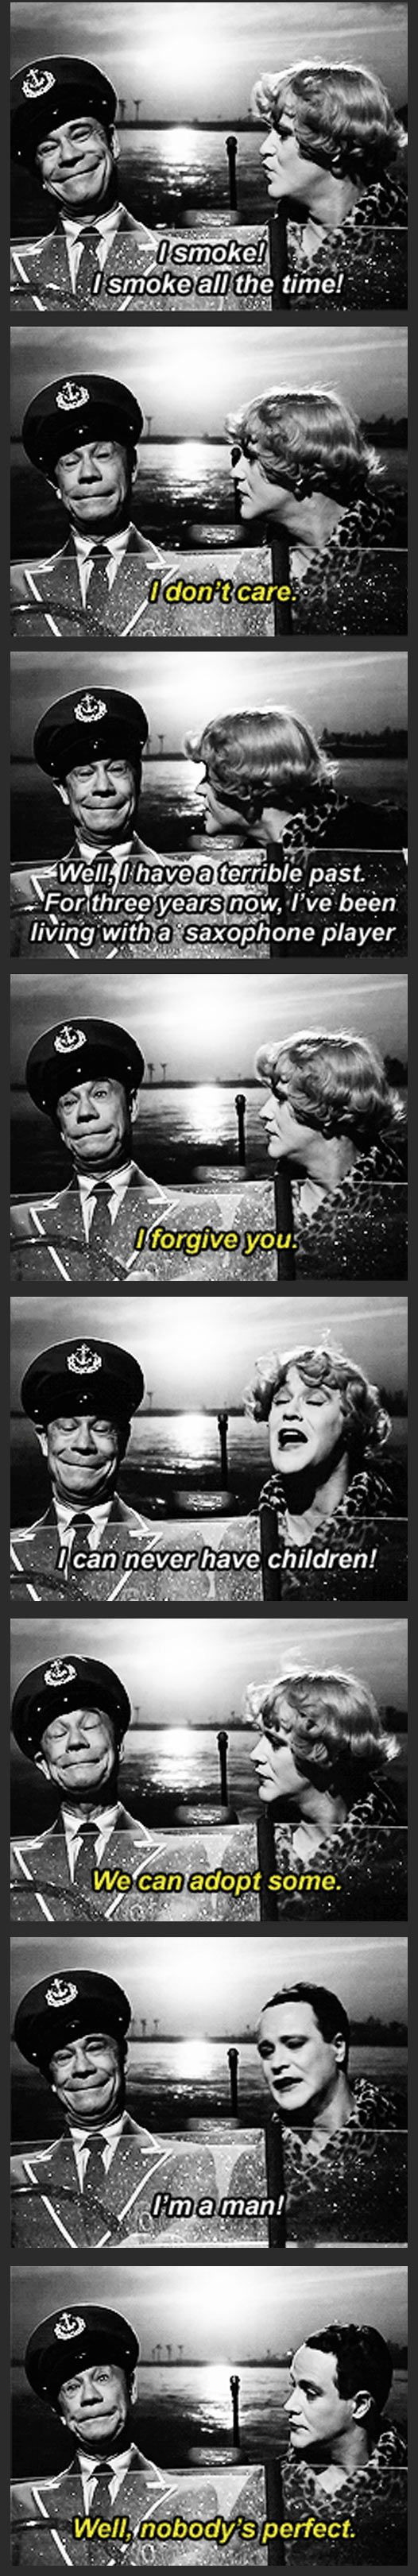 """Well, nobody's perfect."" - Joe E. Brown and Jack Lemmon in Billy Wilder's ""Some Like It Hot"", 1959."